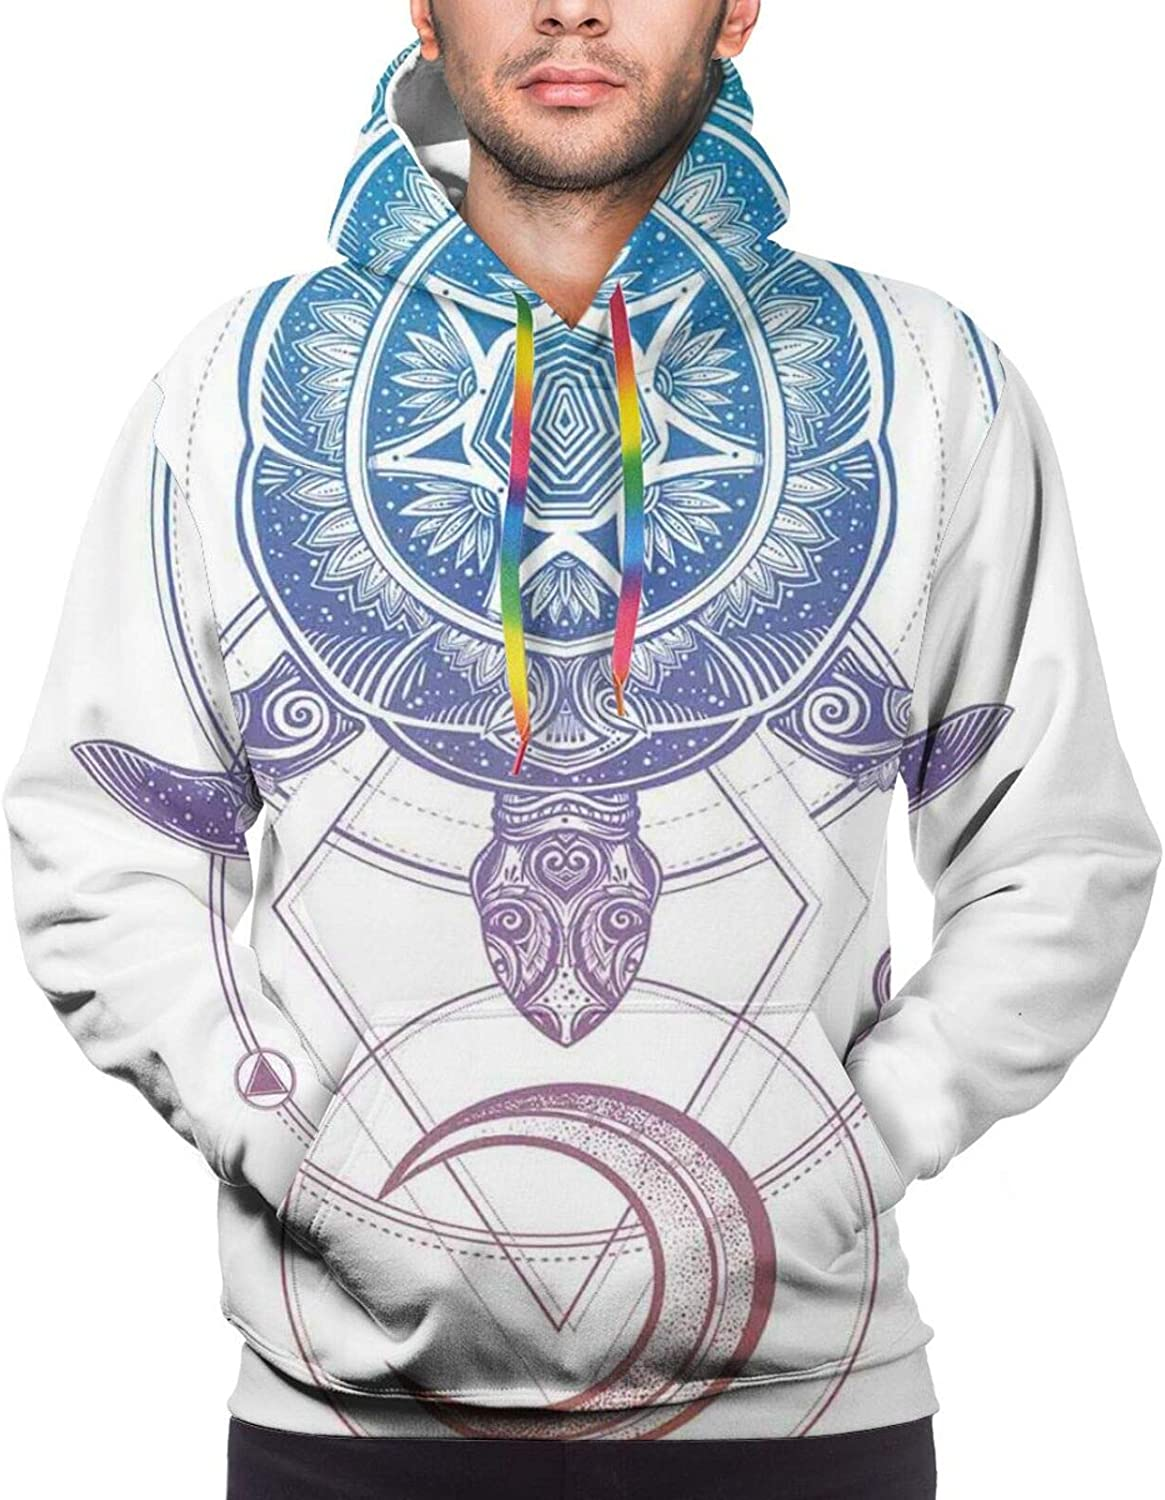 Men's Hoodies Sweatshirts,Sacred Geometry Inspired Design with Crescent Moon Stars and Circle Dashed Shapes